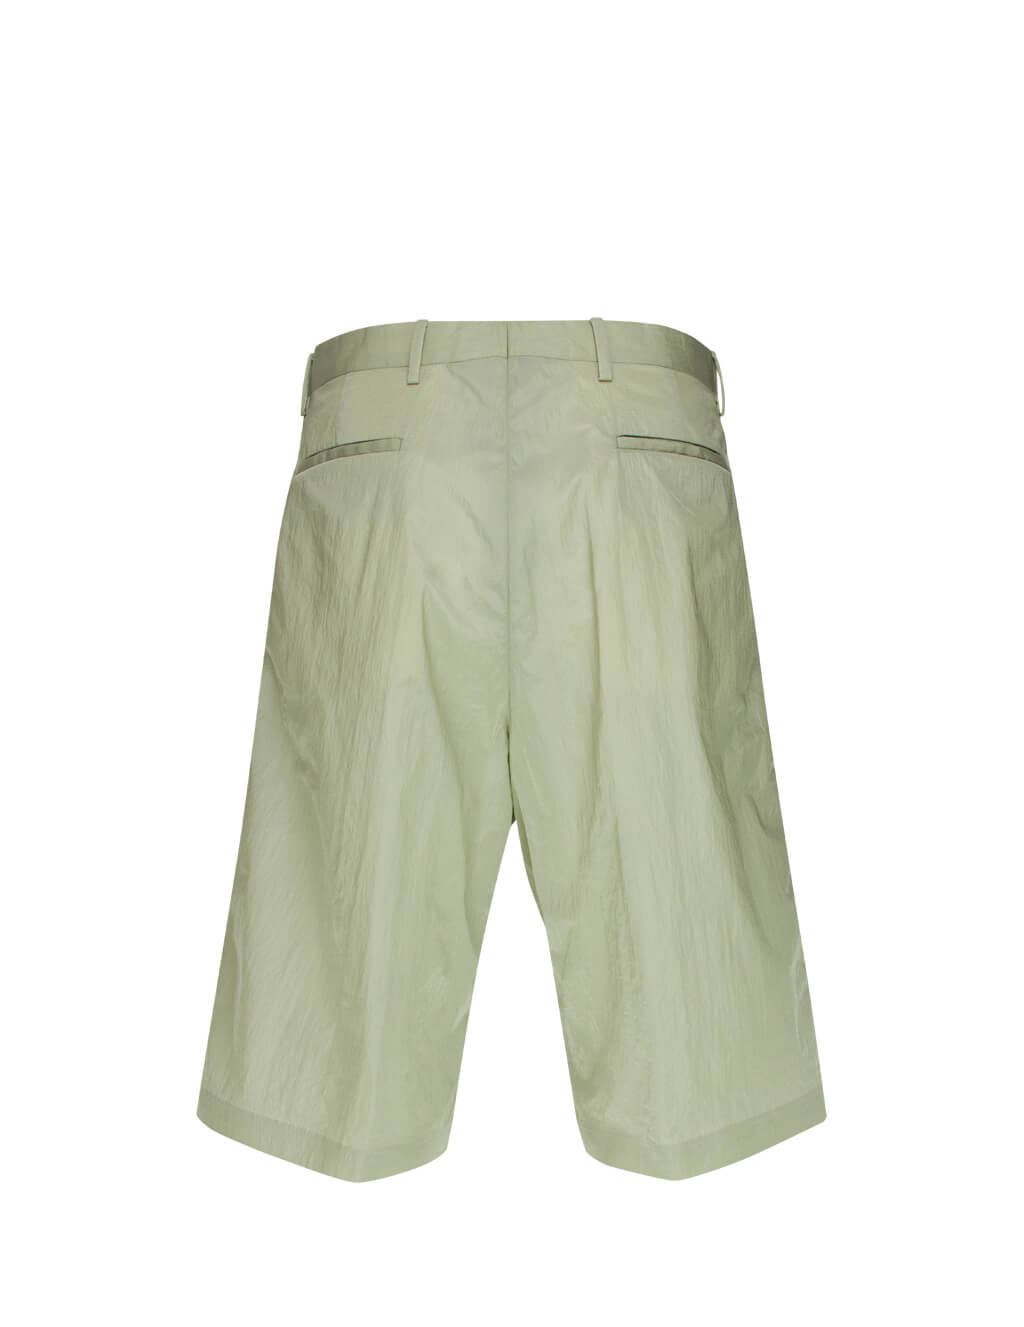 Paul Smith Men's Giulio Fashion Green Wide Shorts M1R-992T-A01038-34